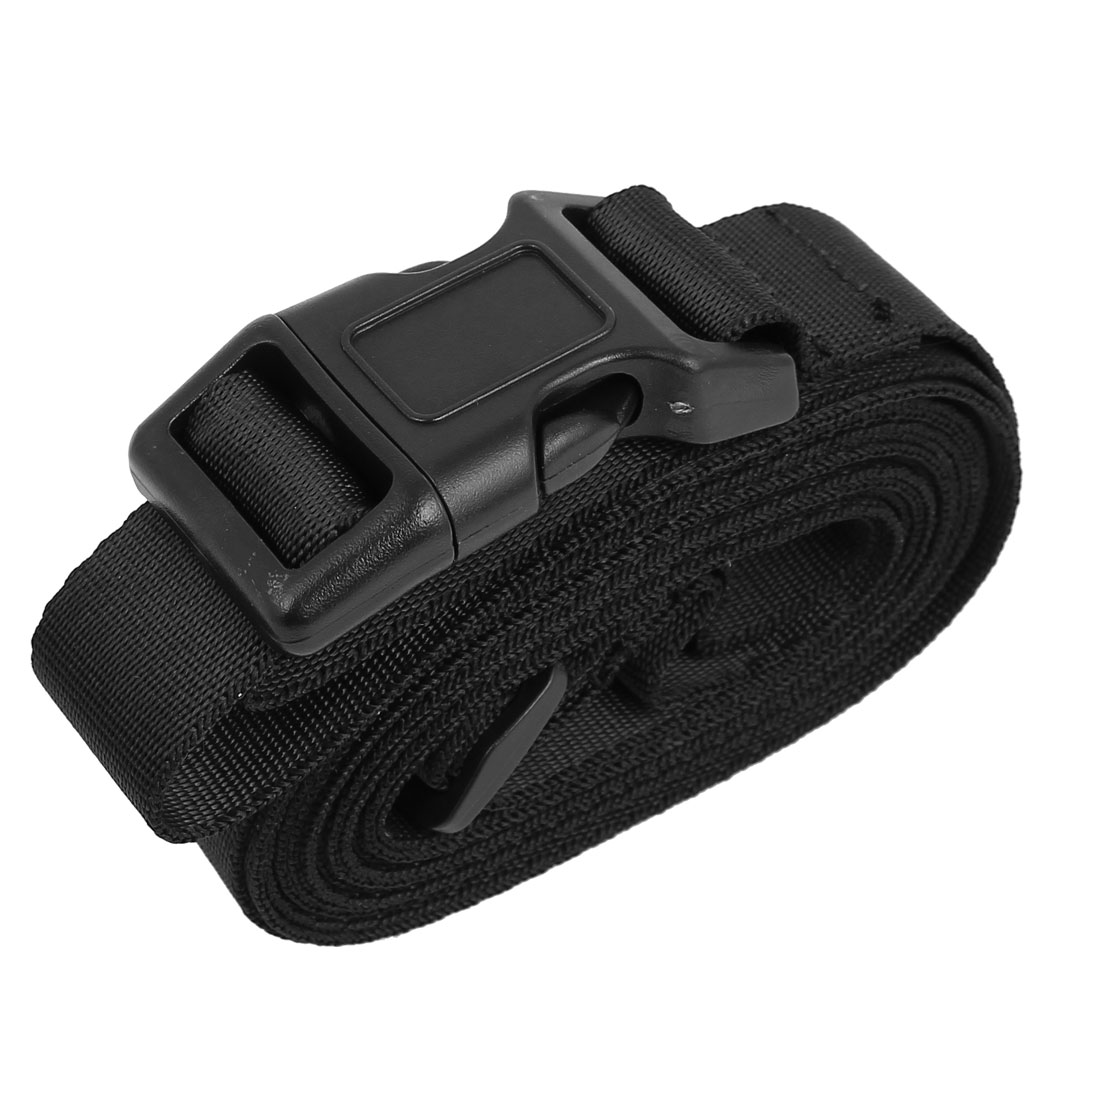 Quick Release Buckle Luggage Suitcase Backpack Baggage Adjustable Belt Strap Black 10Ft